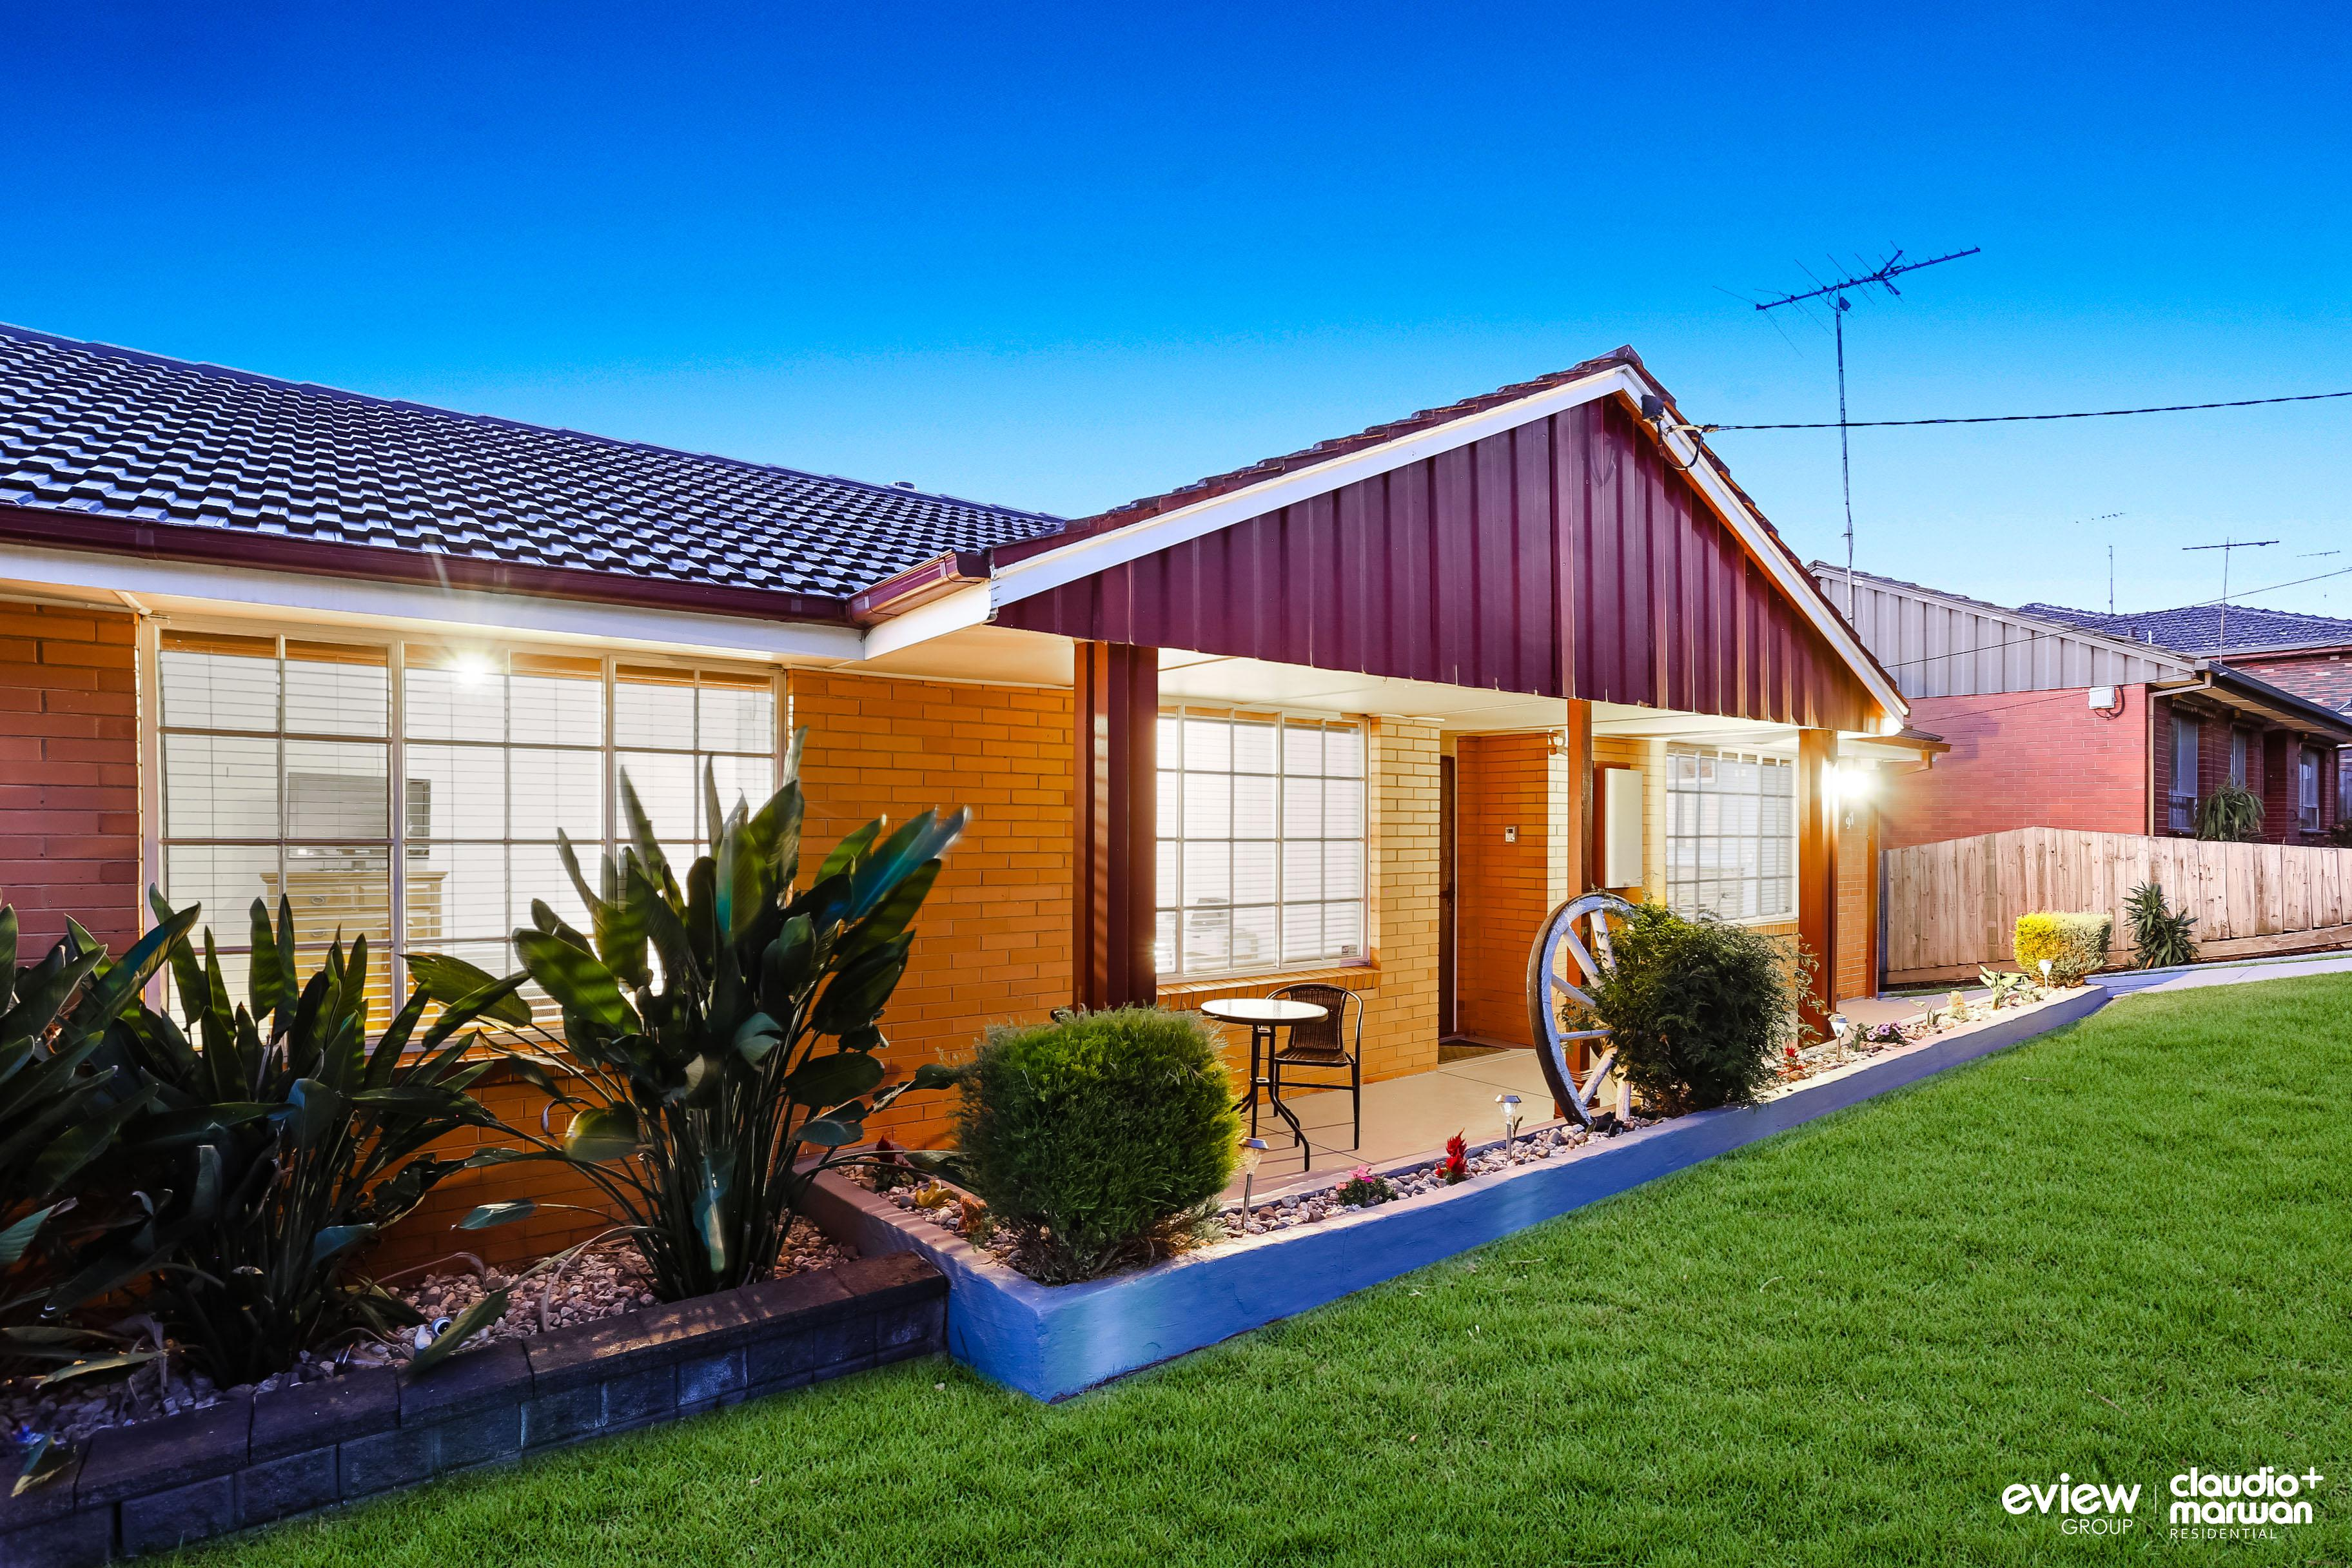 97 Outlook Drive, GLENROY, VIC, 3046 - Image